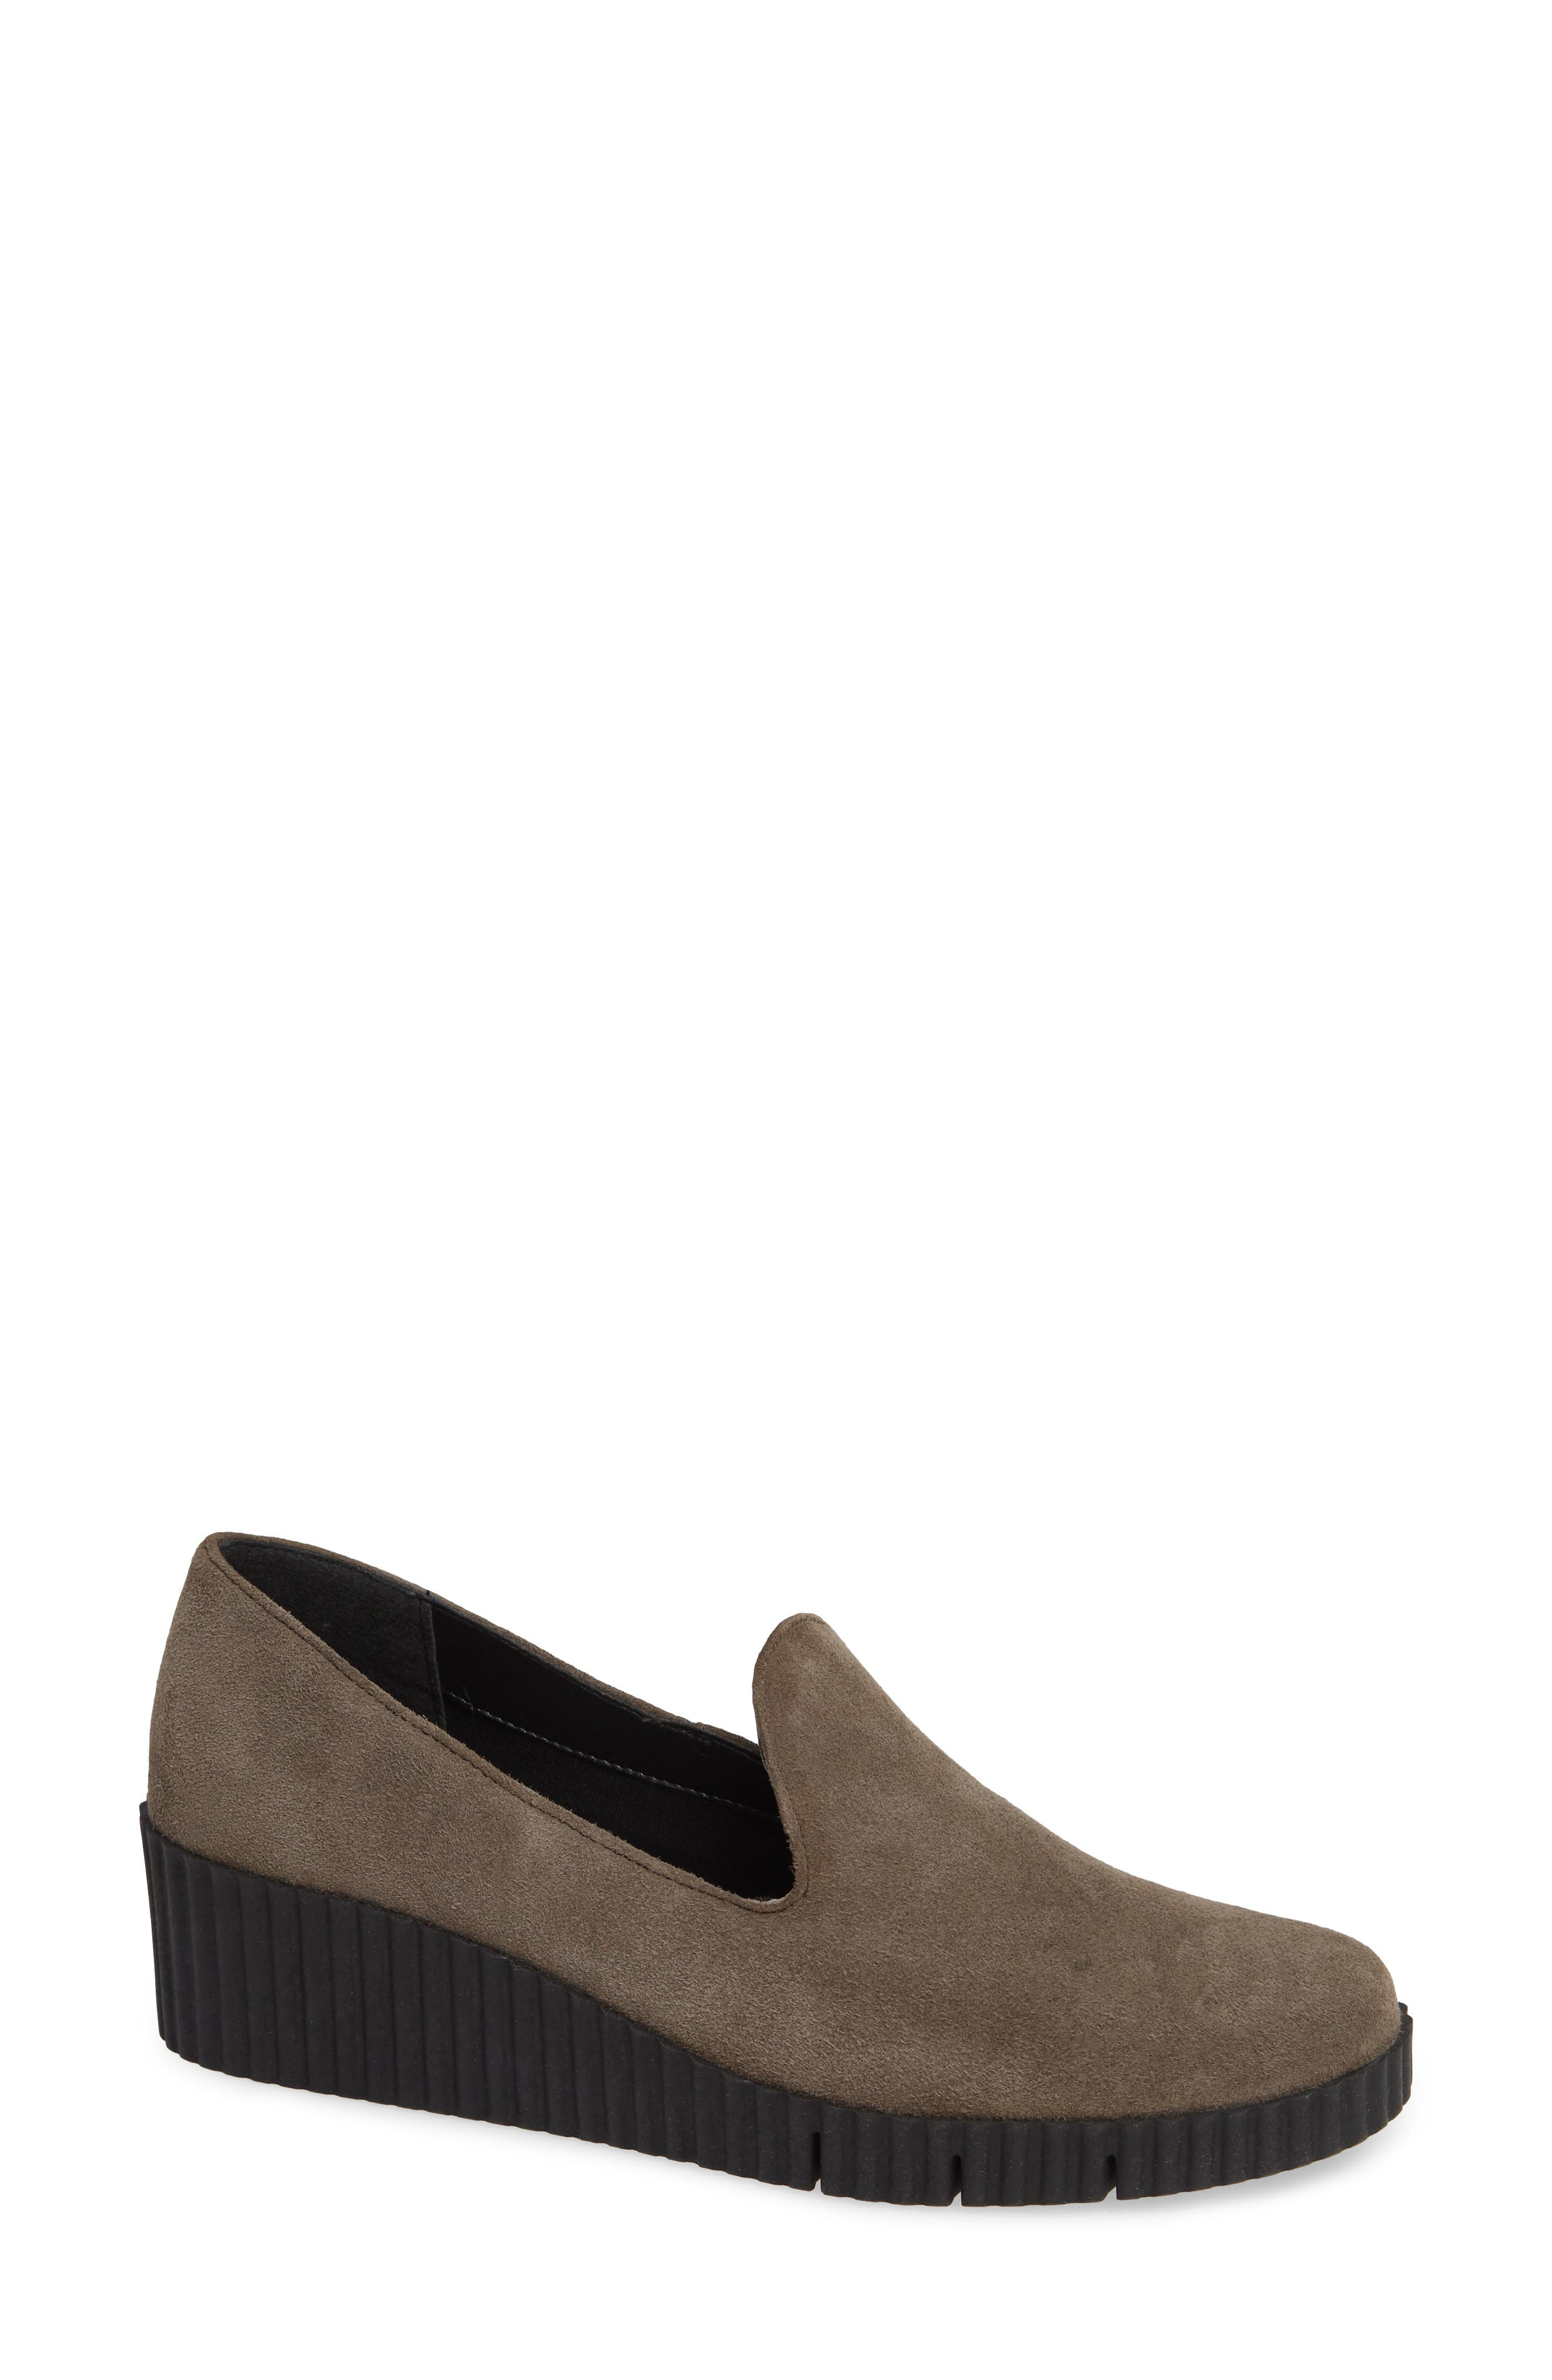 THE FLEXX Fast Times Loafer, Main, color, BROWN SUEDE